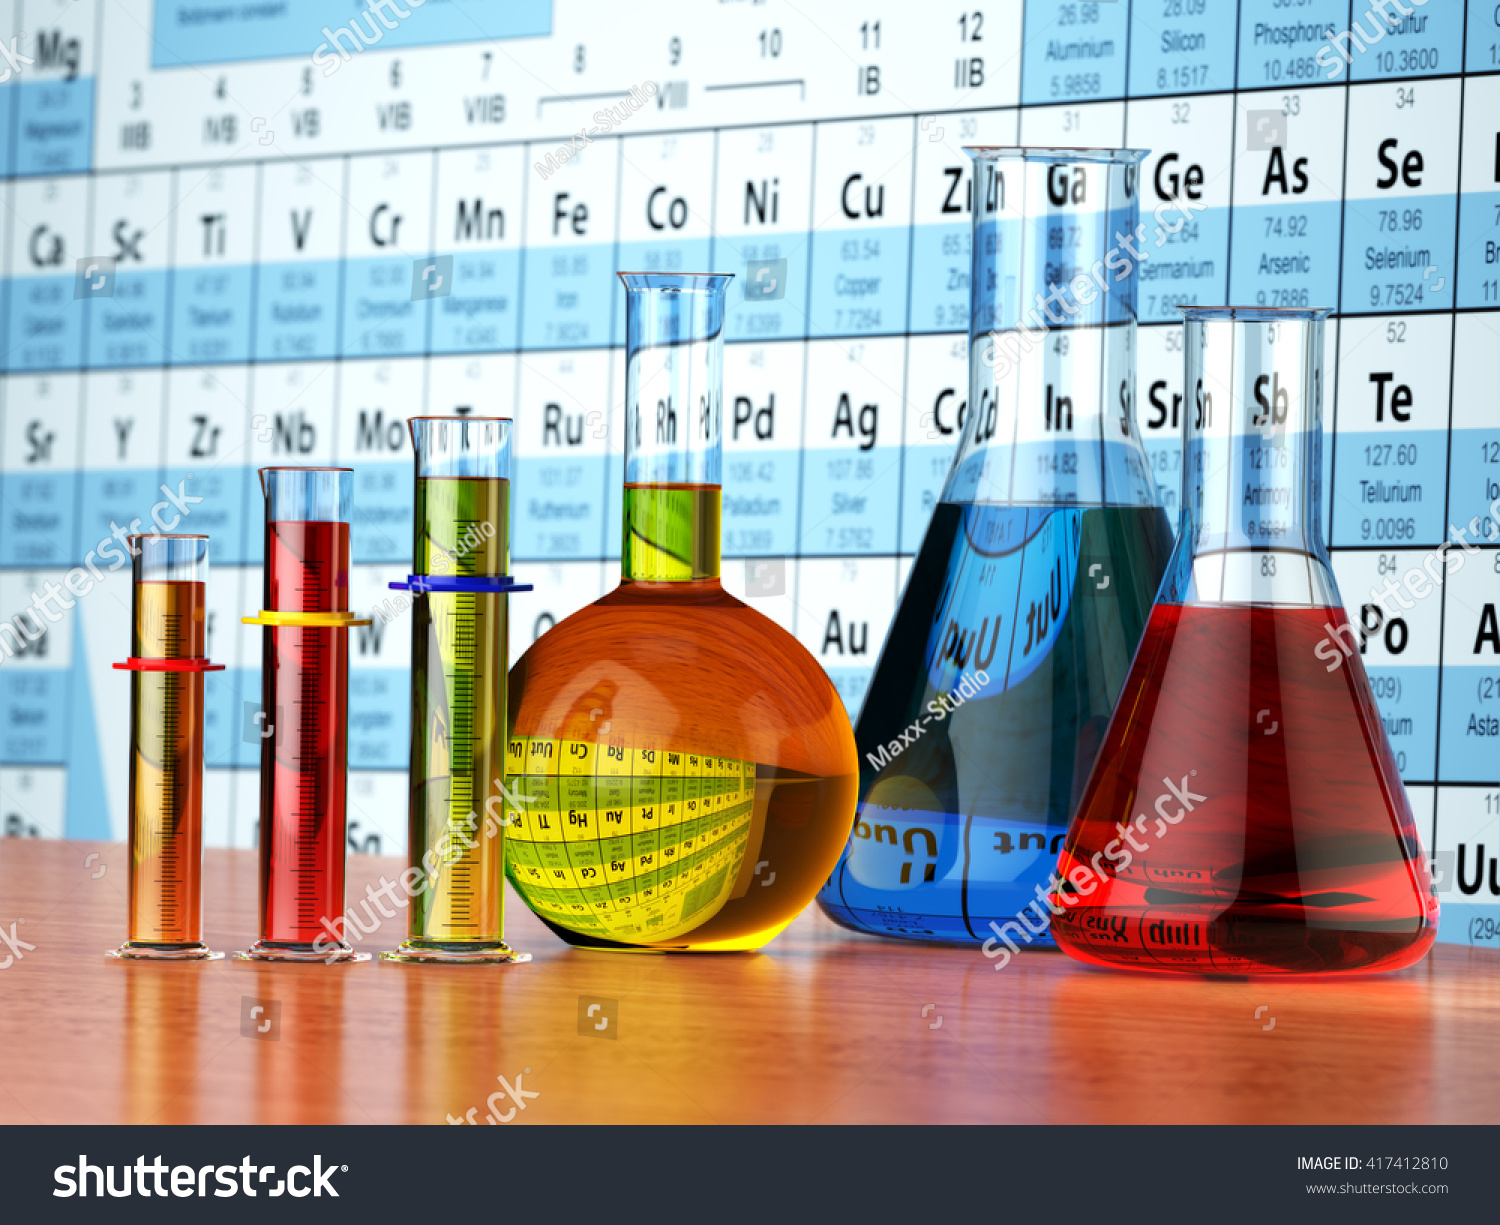 Periodic table solids liquids and gases gallery periodic table solids liquids and gases periodic table choice image periodic periodic table gases solids liquids gallery periodic gamestrikefo Choice Image